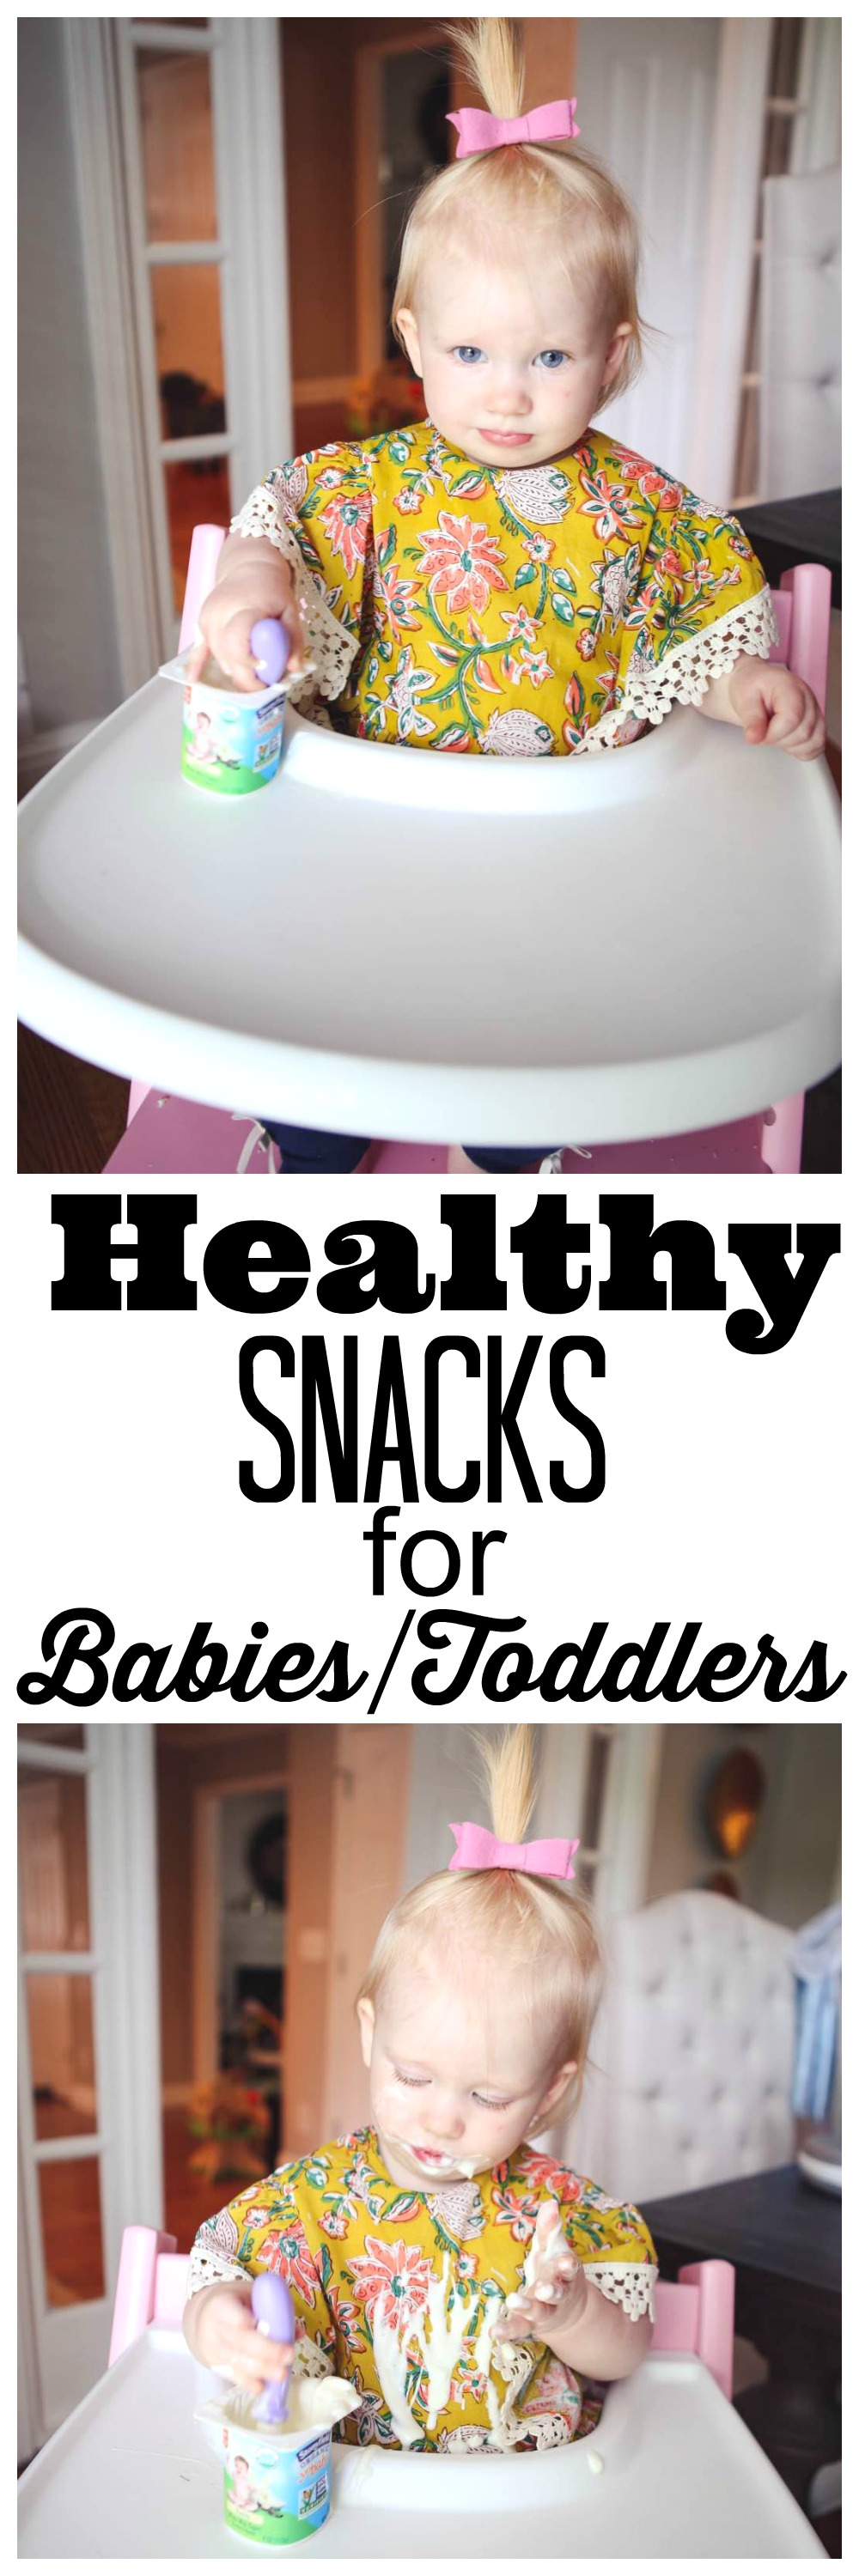 Healthy snacks for babies and toddlers